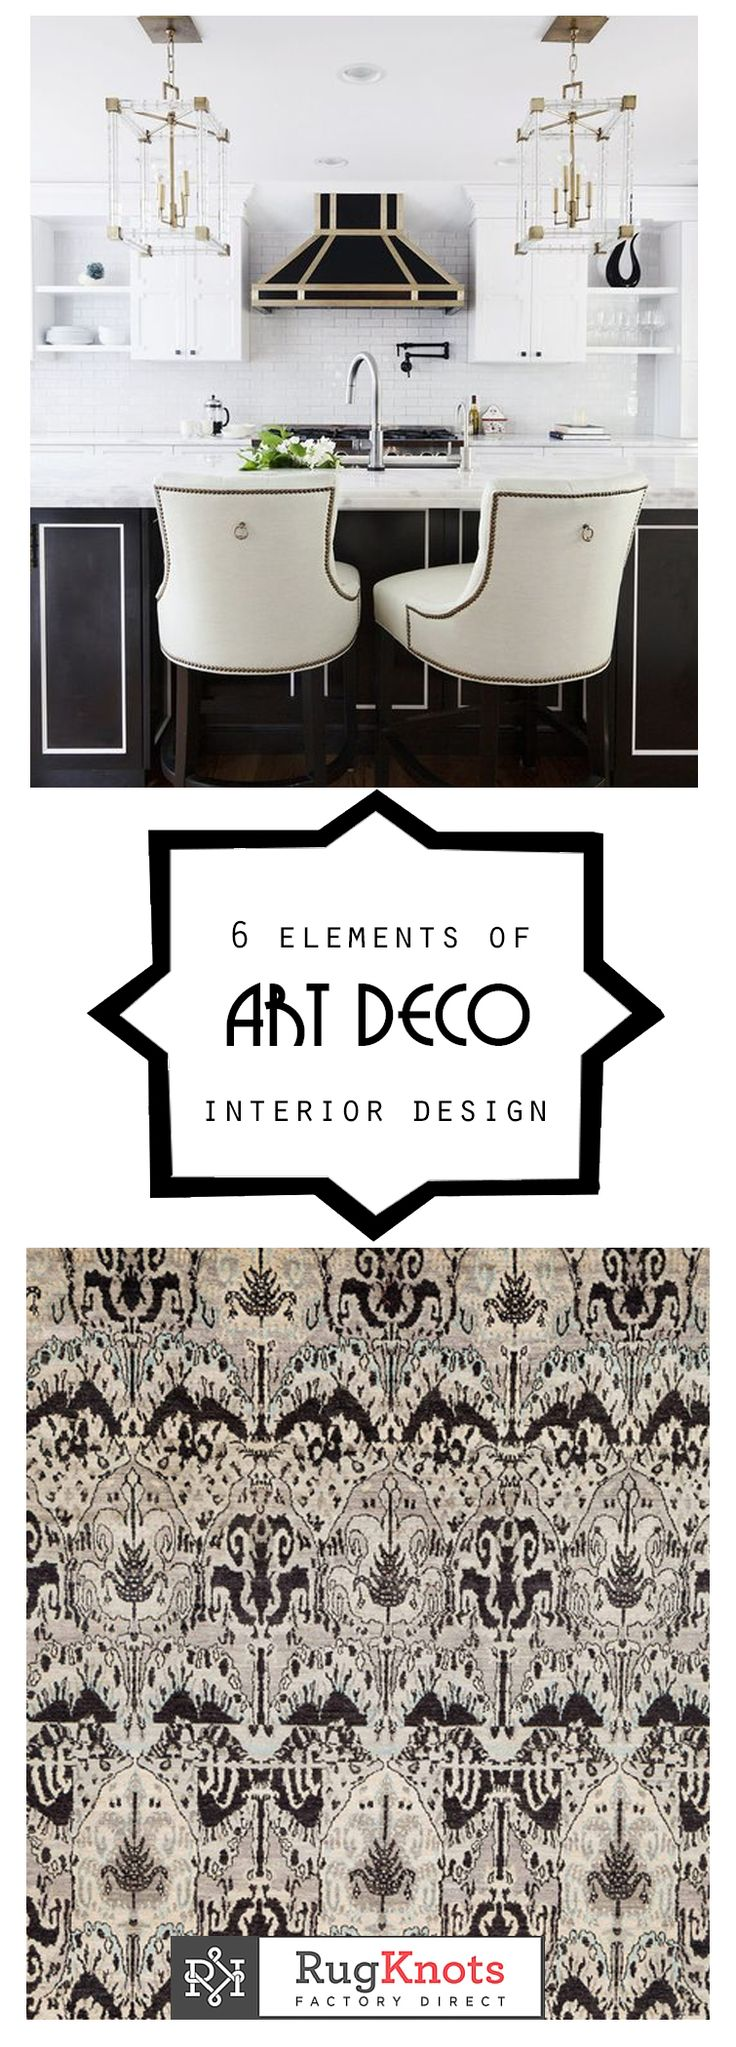 Wondering how to bring 20s glamour to your home? We've compiled a list of everything you need to know about Art Deco design! From foreign influences to geometric shapes....